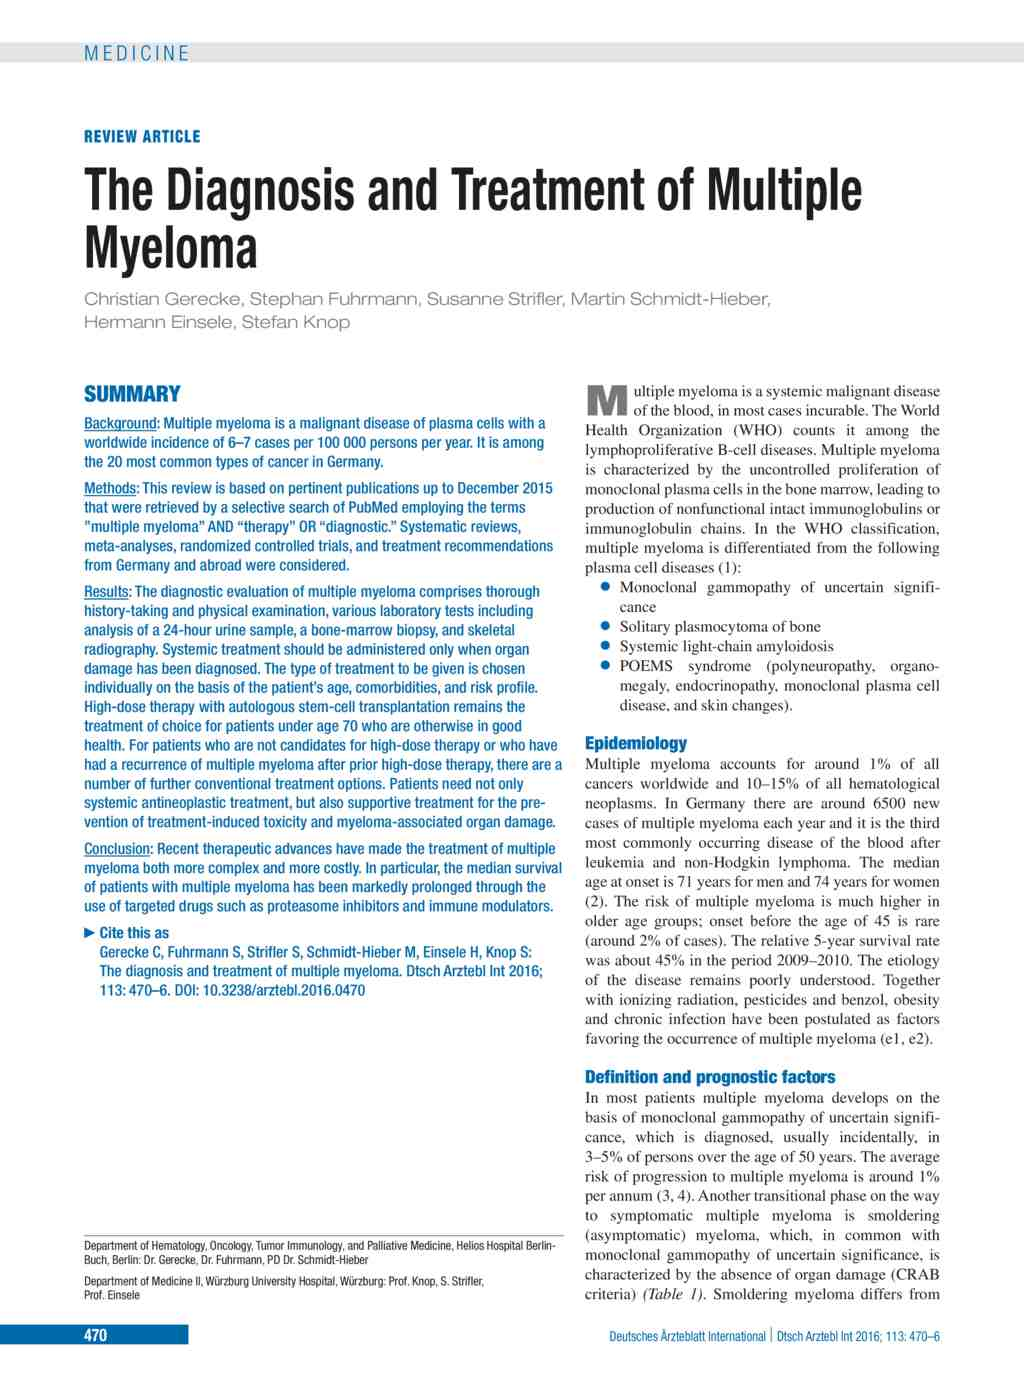 The Diagnosis and Treatment of Multiple Myeloma (11 07 2016)